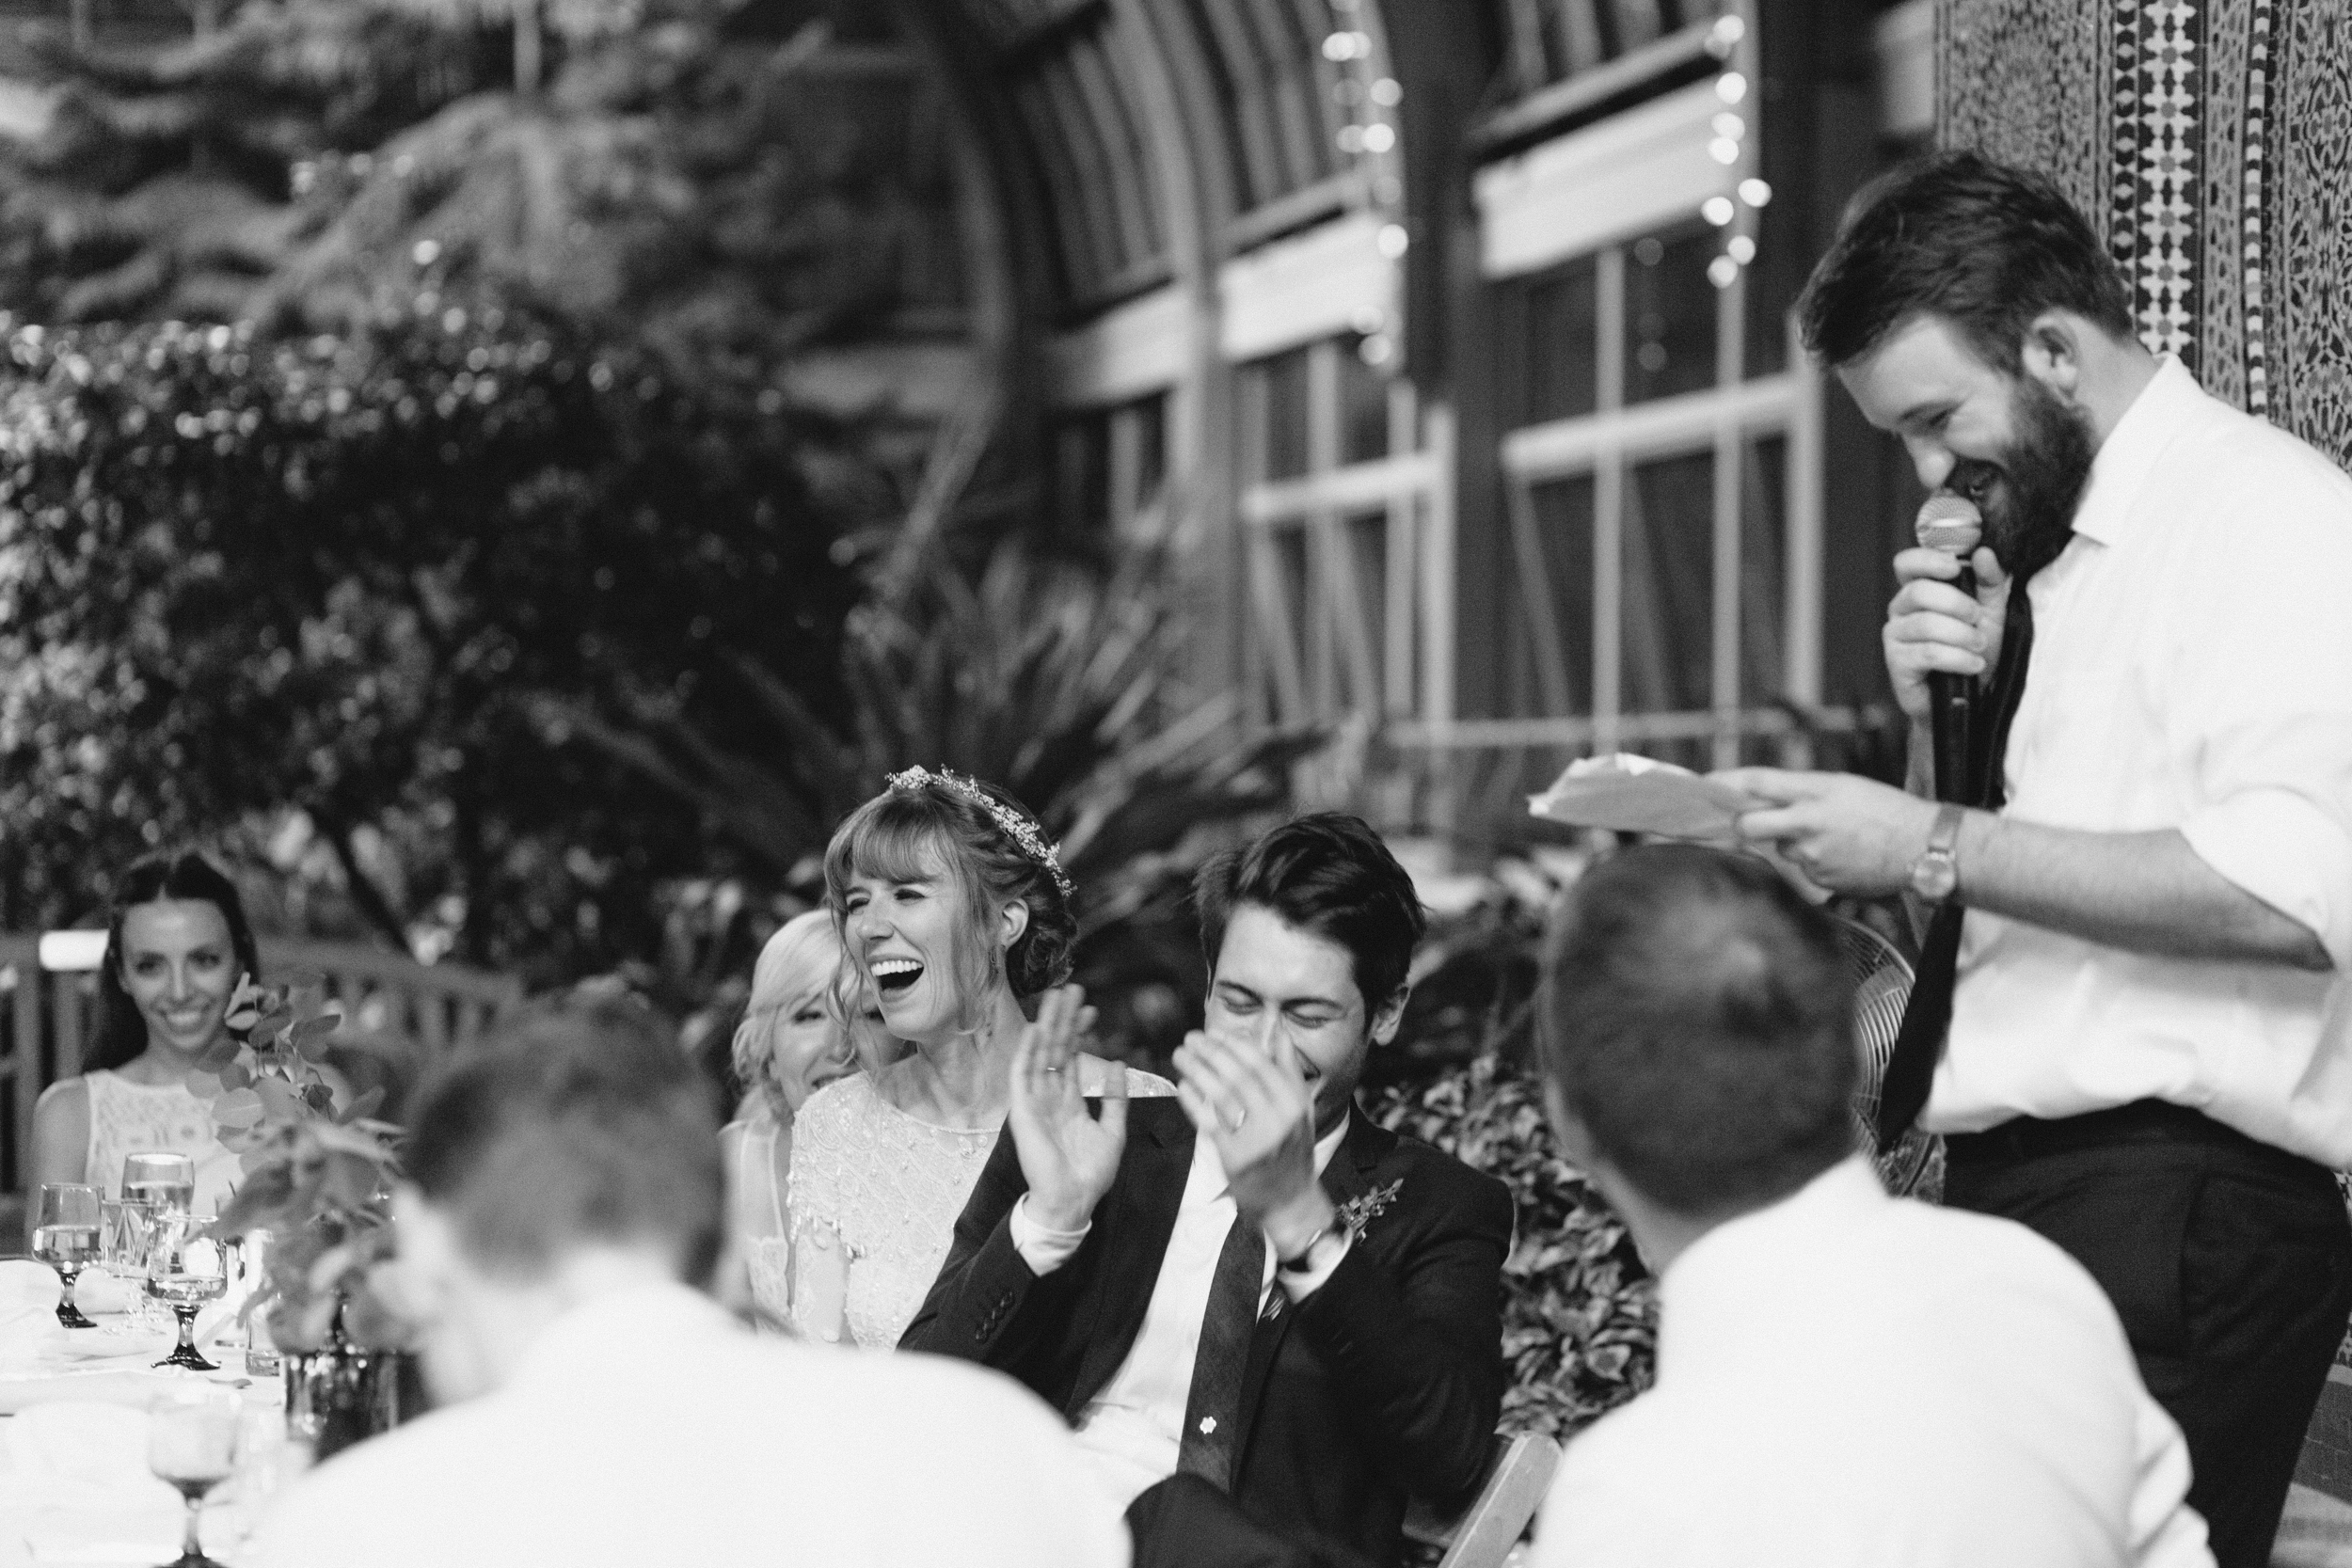 Chicago Wedding Garfield Park Conservatory Mae Stier Wedding Photographer Lifestyle Photography Midwest California-154.jpg